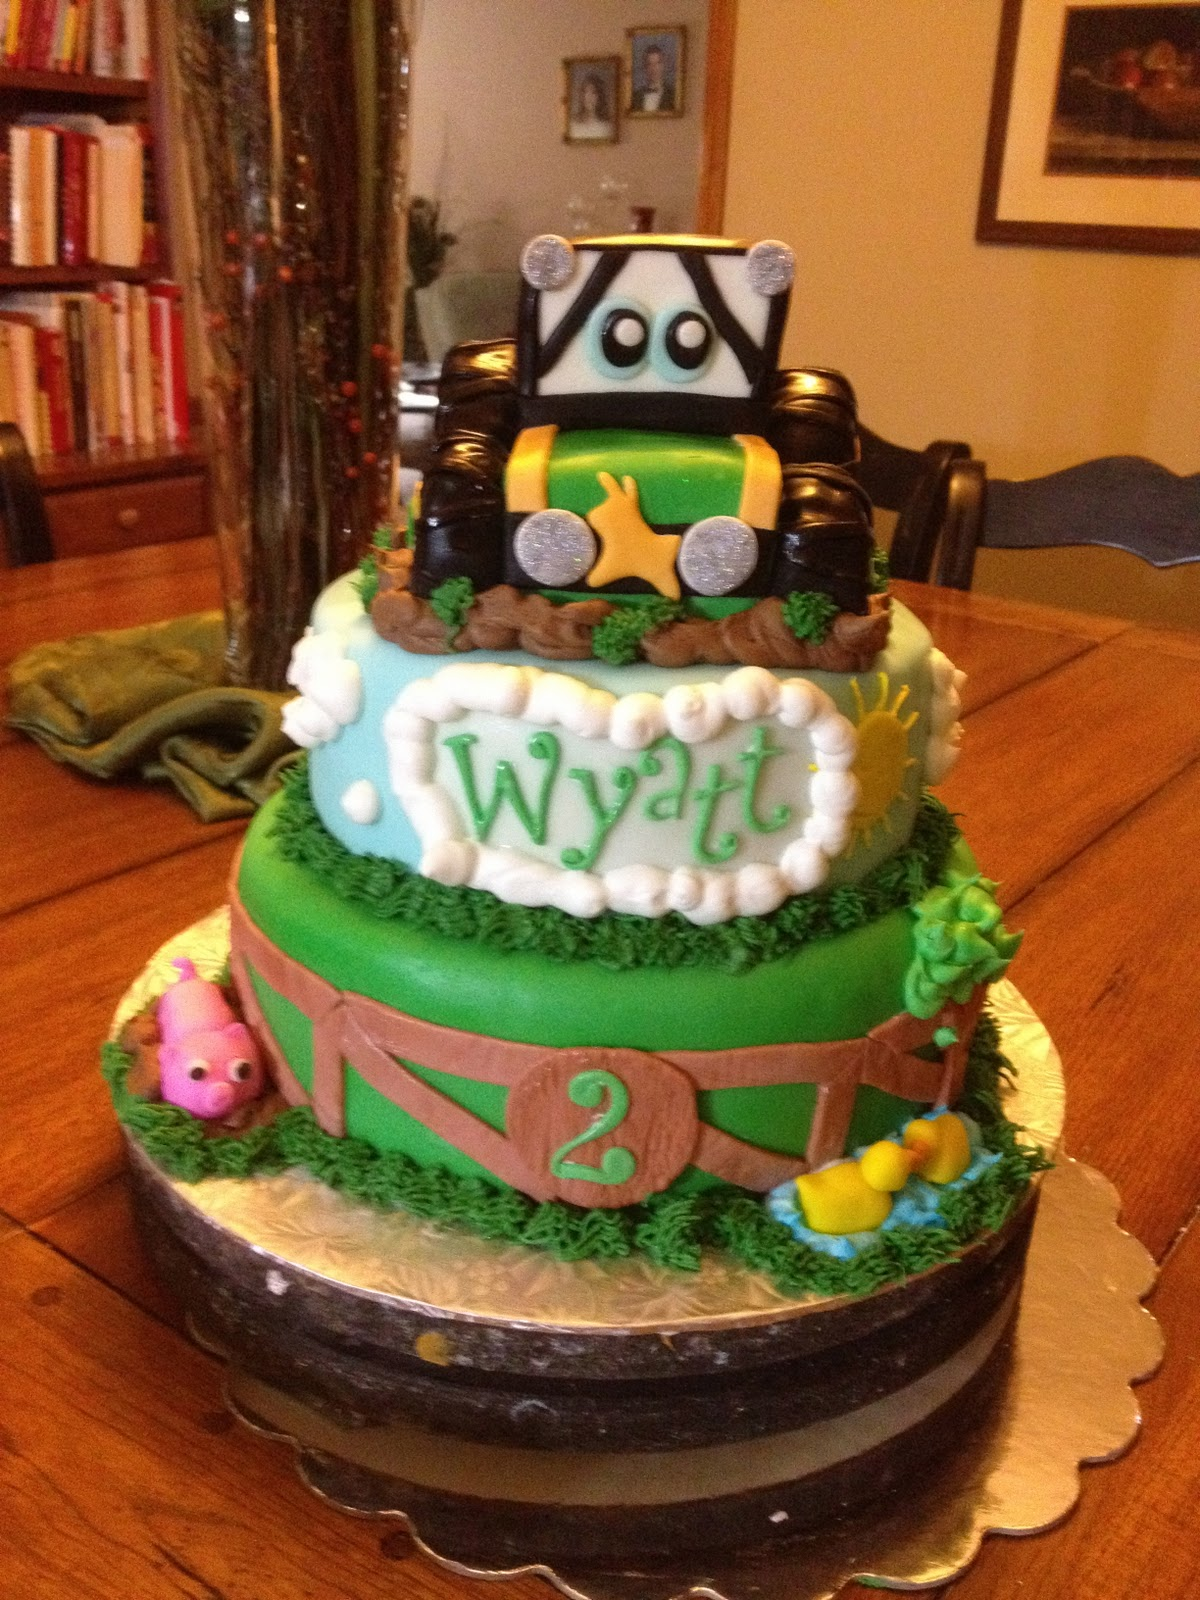 Learning To Fly Cakes And Pastries John Deere Cake For Wyatt